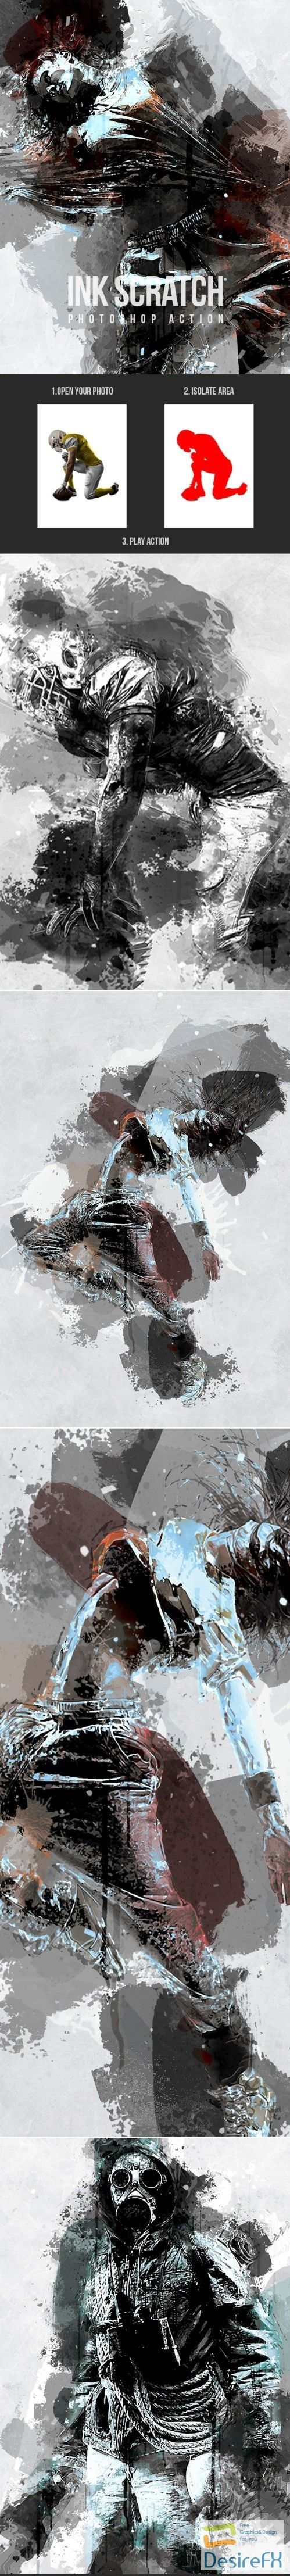 Graphicriver - Ink Scratch - Photoshop Action 21318489